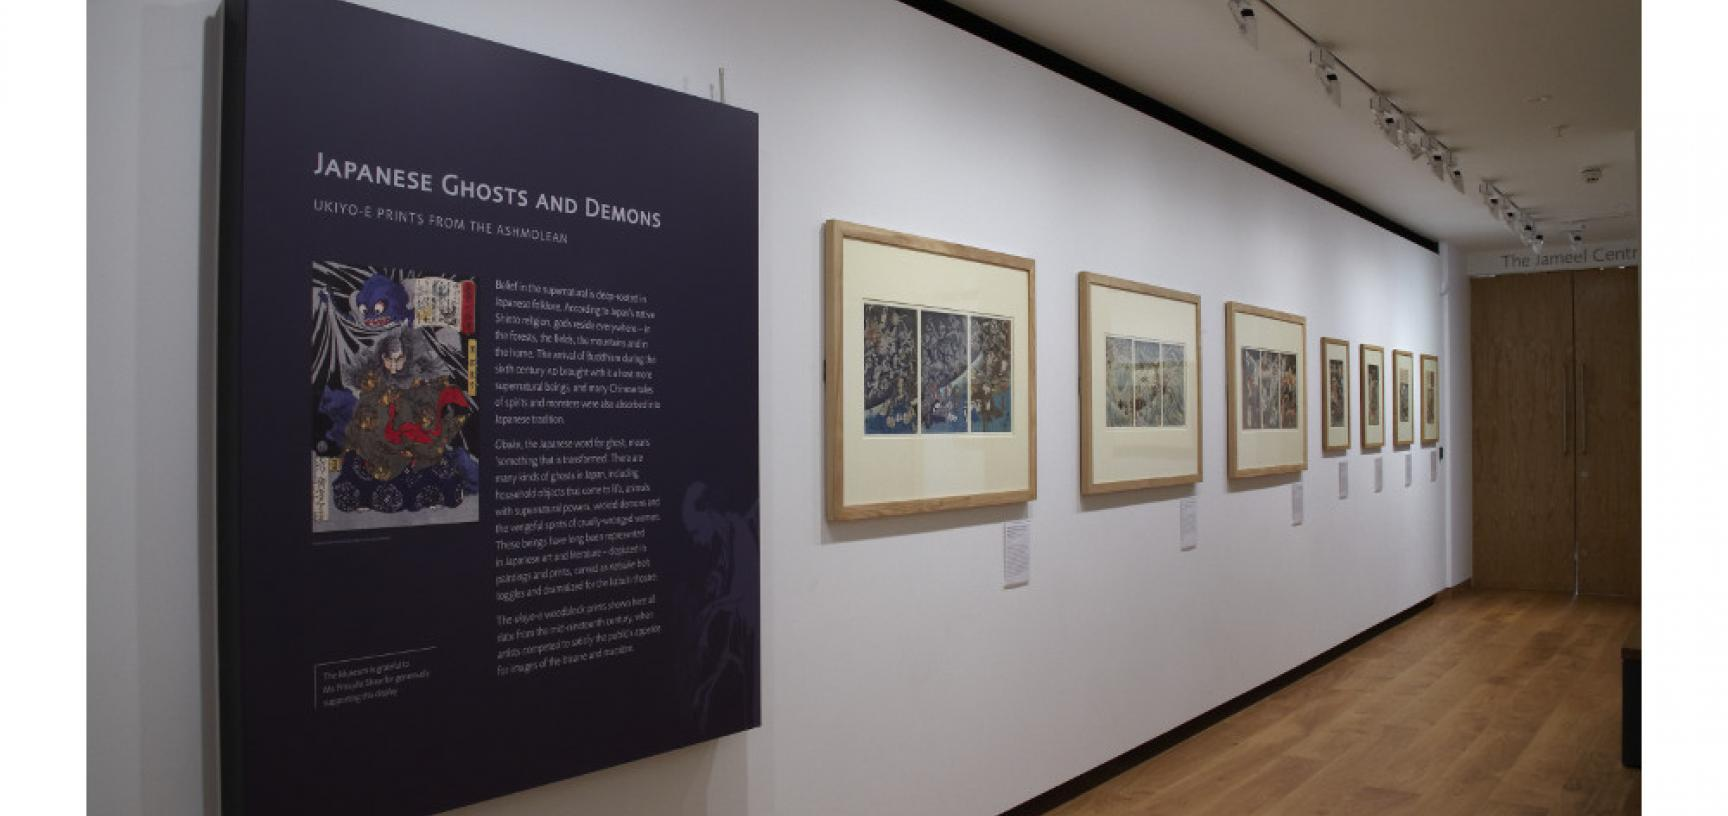 Japanese Ghosts and Demons on display in the Ashmolean's Eastern Art Paintings Gallery